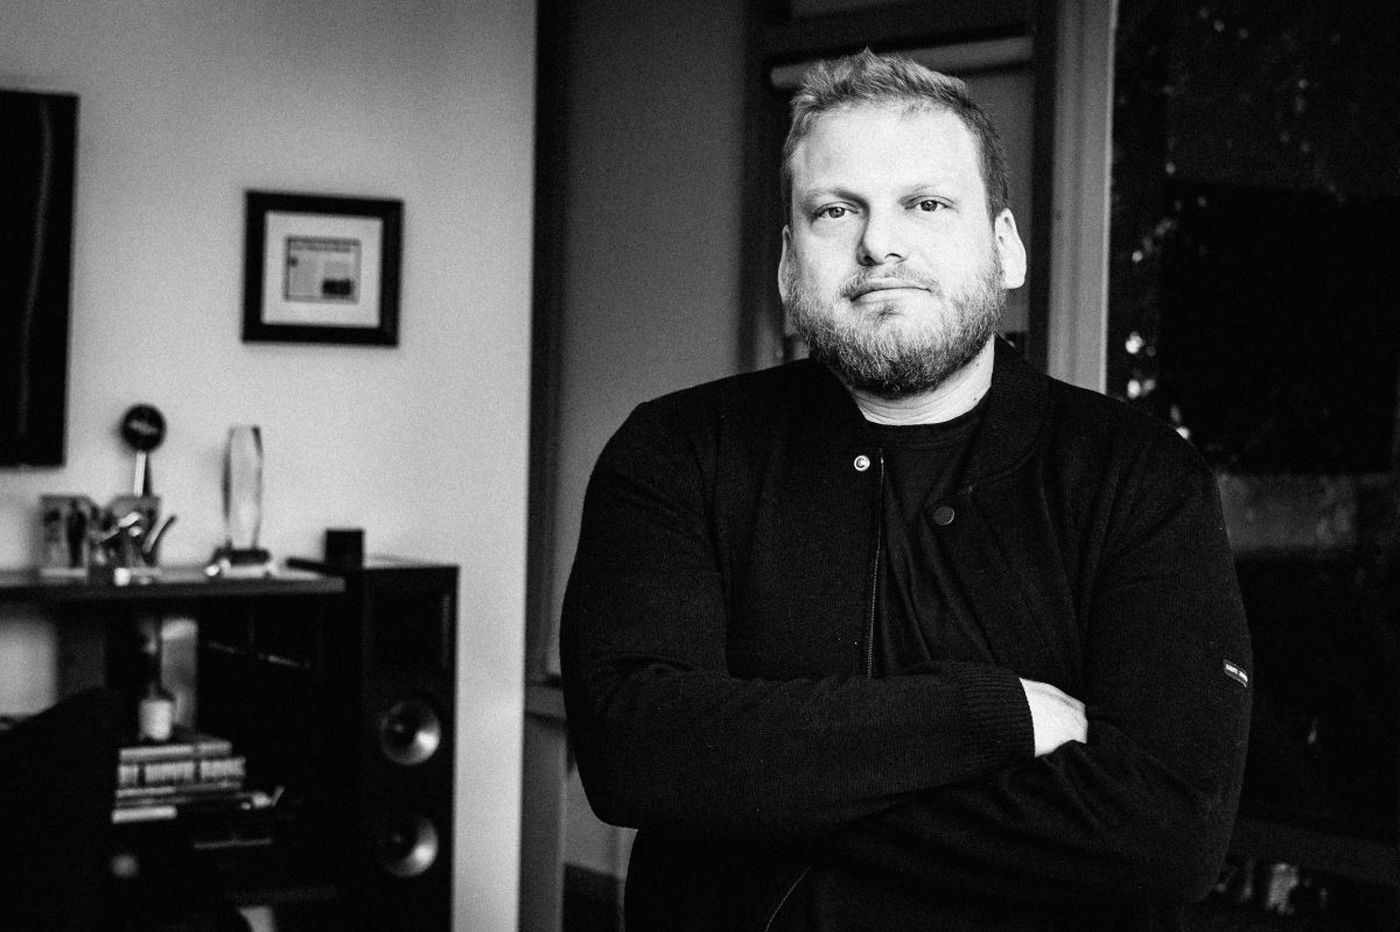 5 Questions: Lessons from the early death of Maroon 5 manager Jordan Feldstein